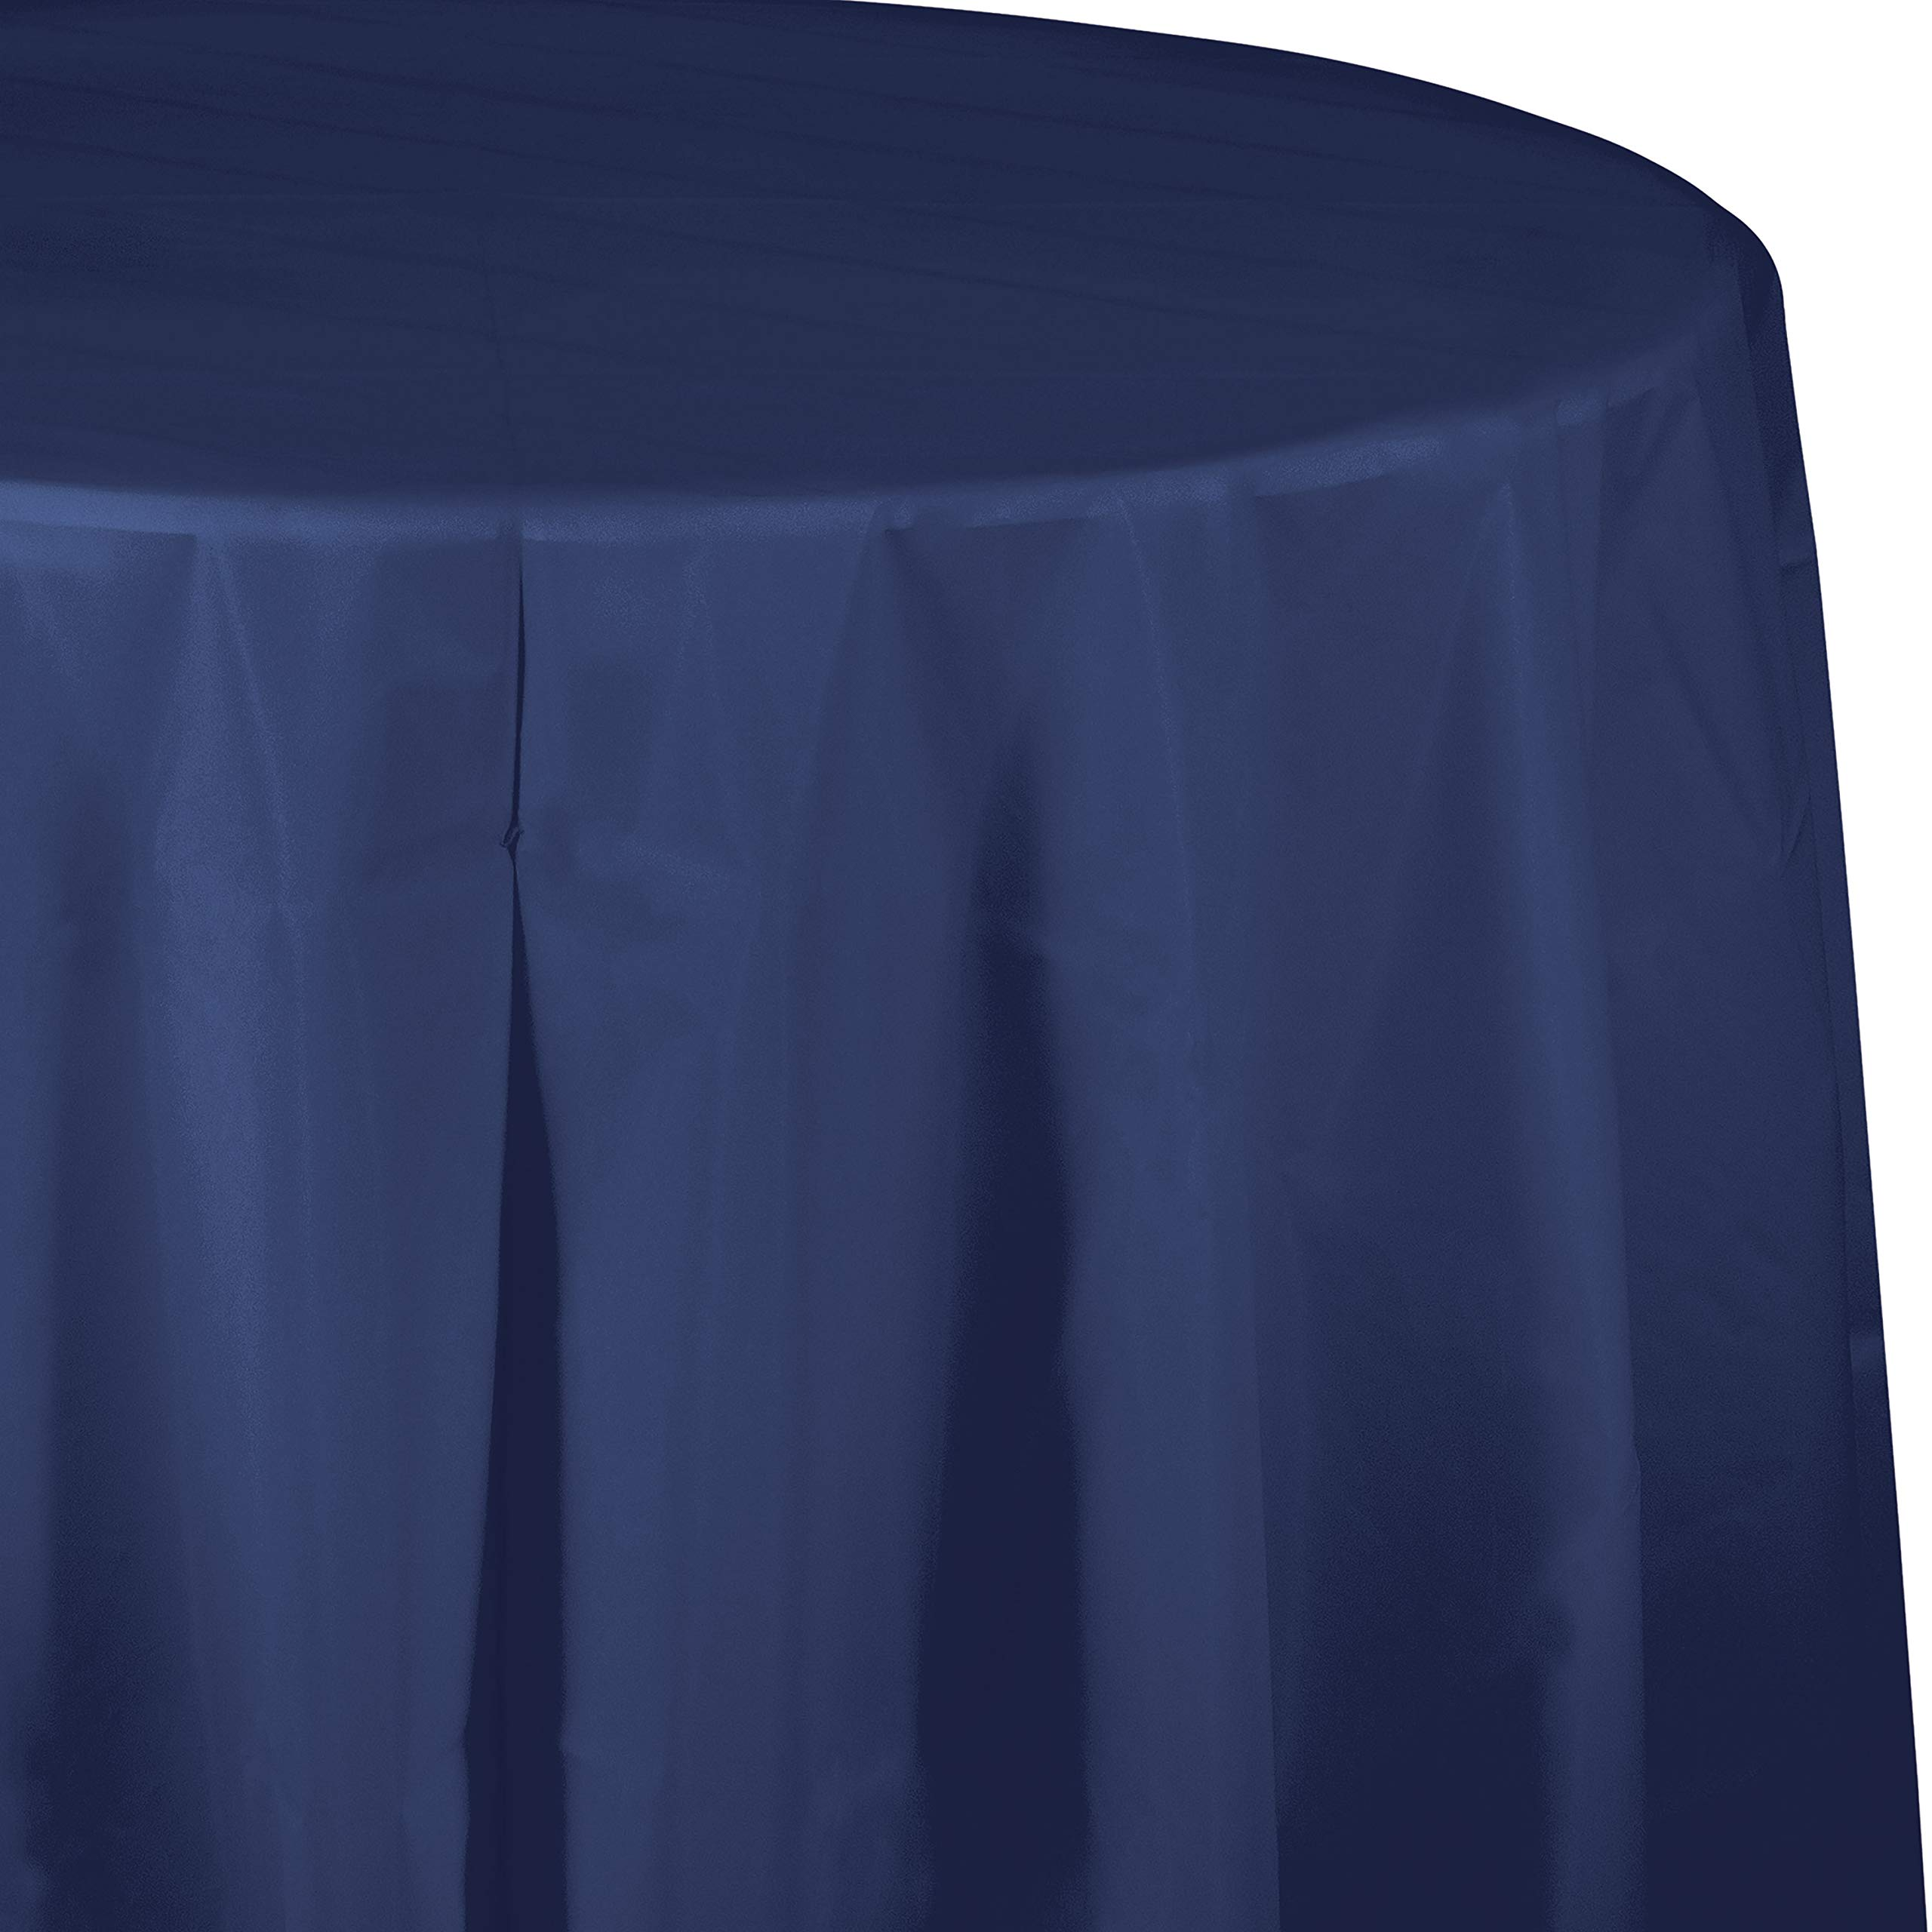 Navy Blue Round Plastic Tablecloths, 3 ct by Creative Converting